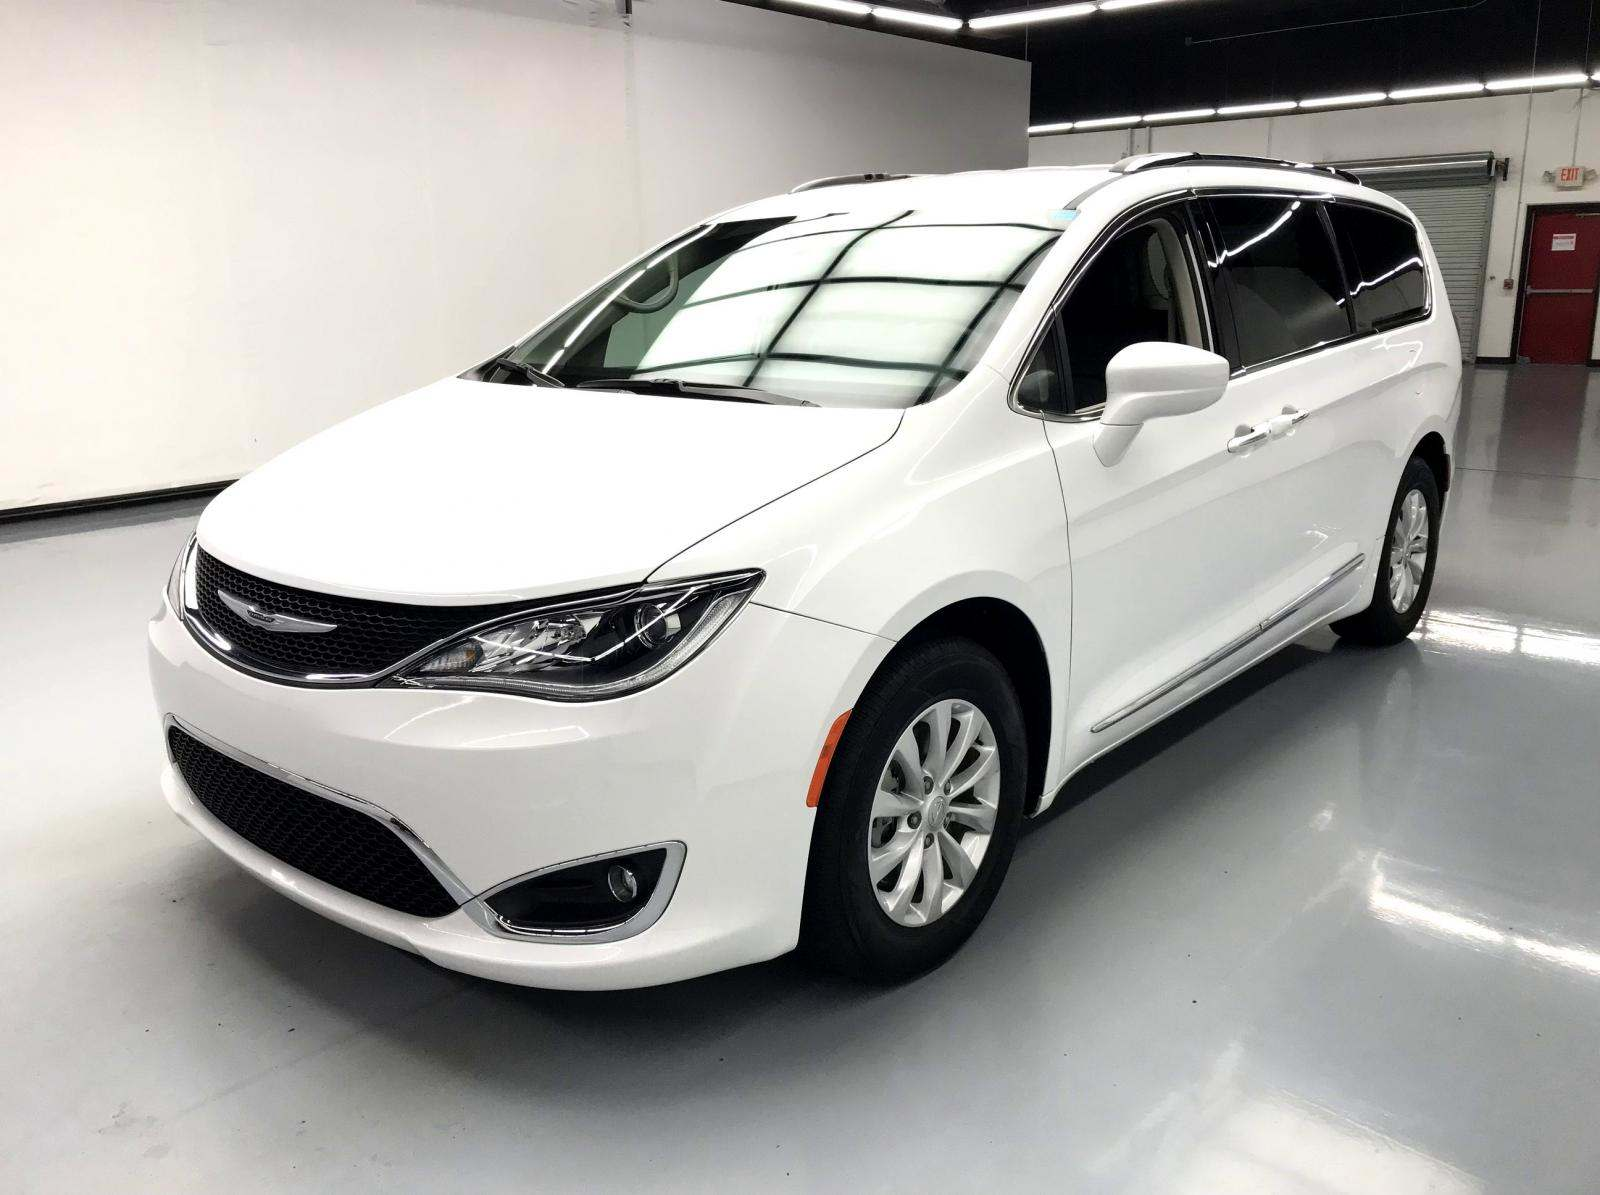 used Chrysler Pacifica 2019 vin: 2C4RC1BGXKR554914